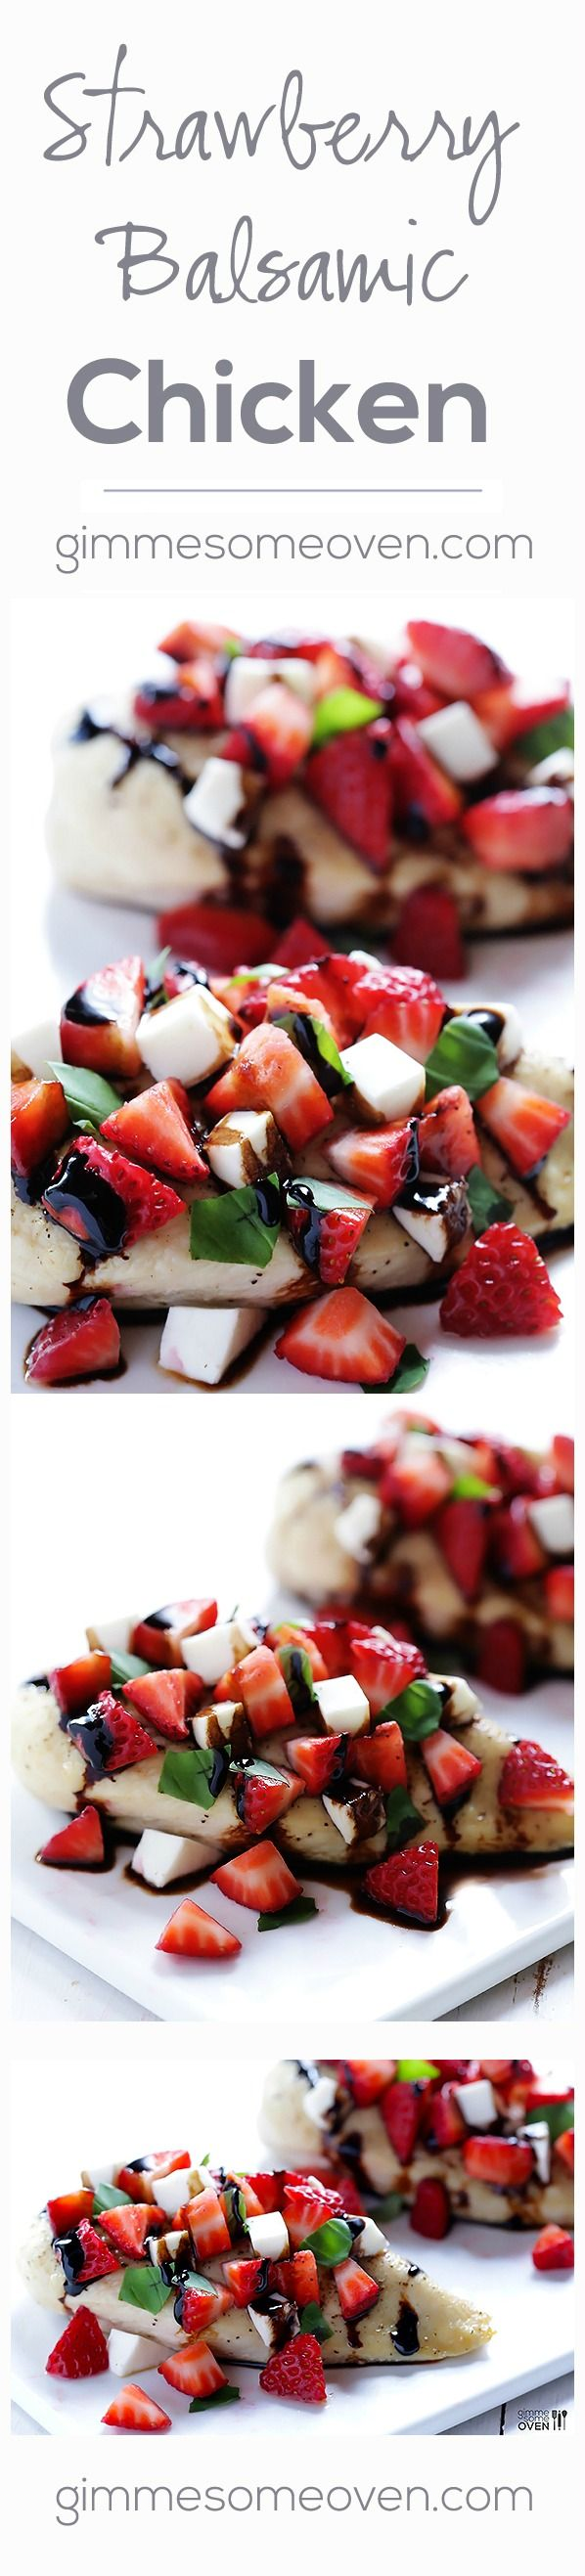 Strawberry Balsamic Chicken.  Even without the topping, this would be yummy (chicken marinated in balsamic vinegar).